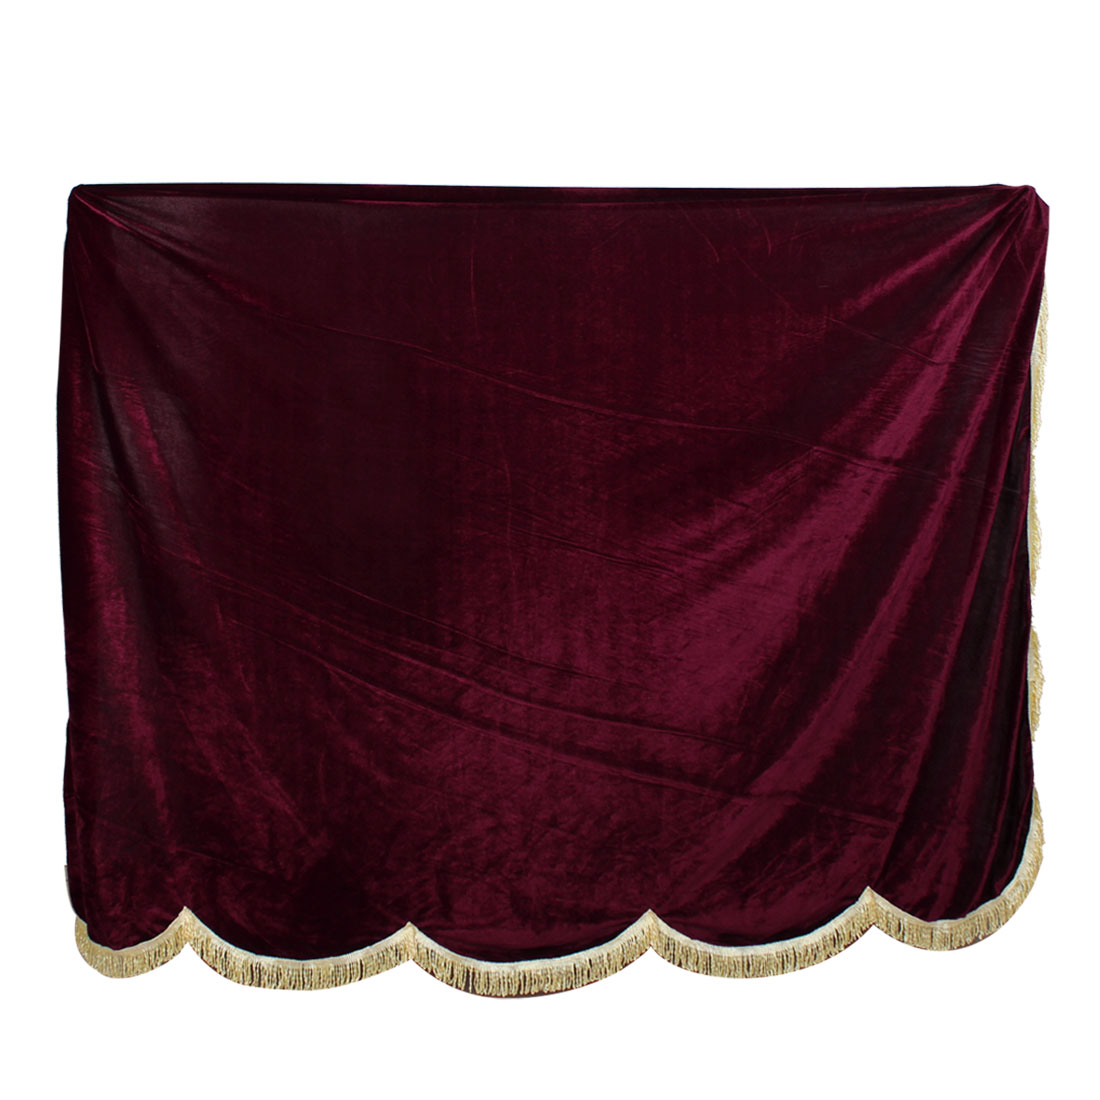 "Dustproof Scalloped Edge Design Pleuche Piano Full Cover Burgundy 76"" x 32"""